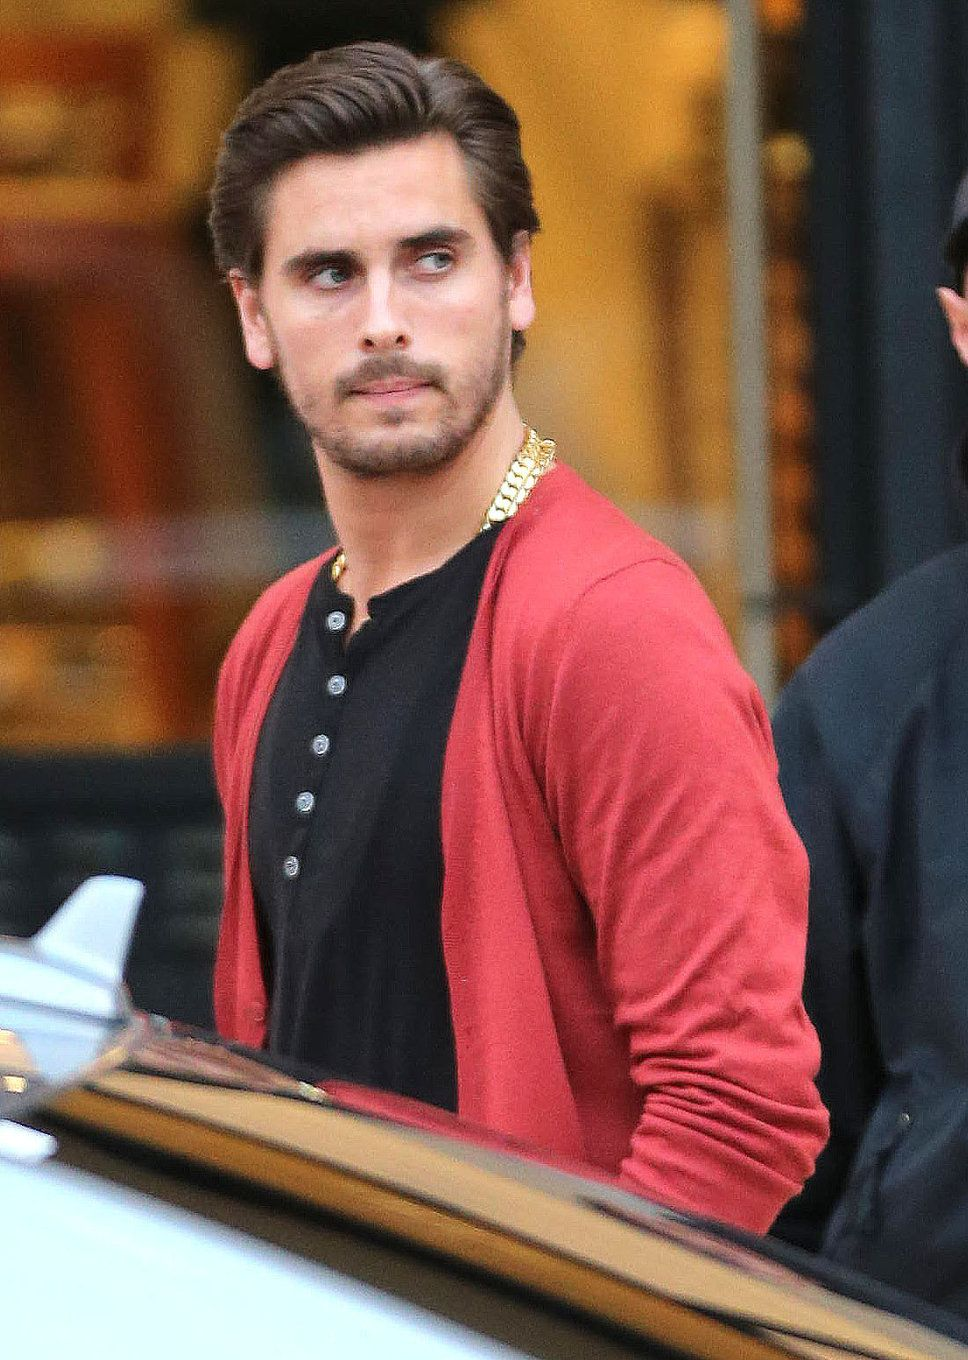 Scott Disicks Style Scott Disick Best Dressed Man Pinterest